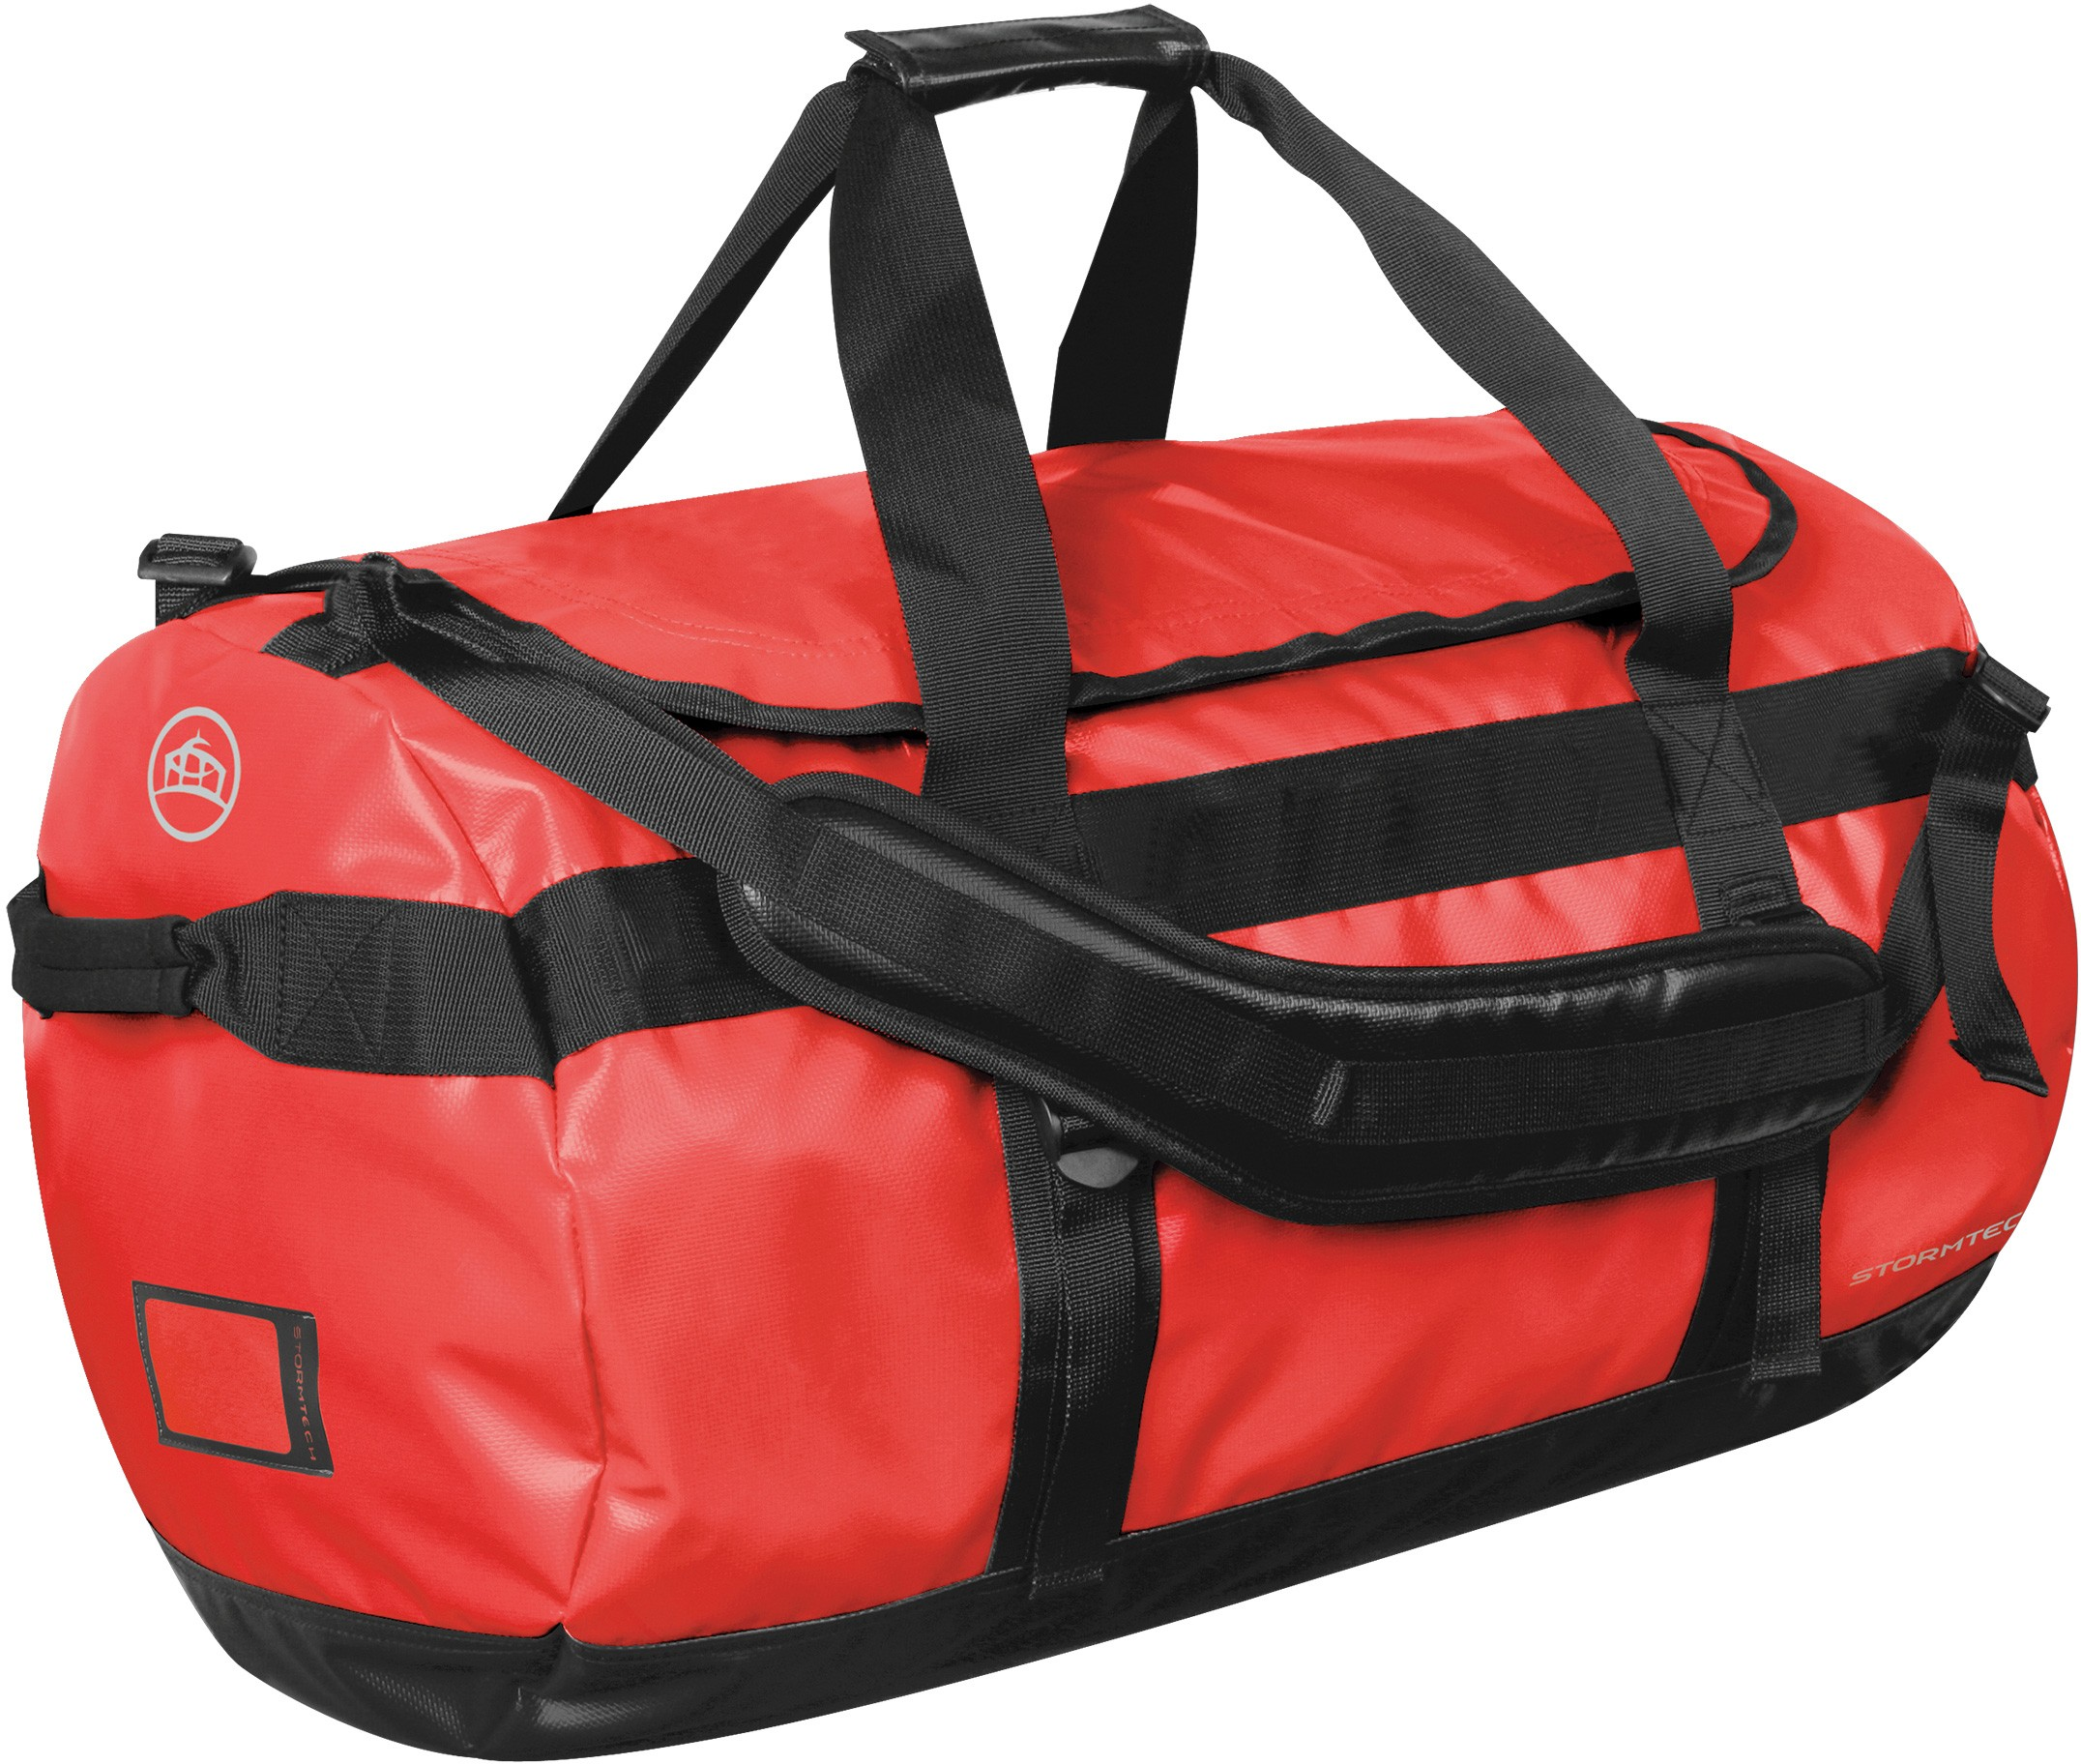 Stormtech Atlantis Waterproof Gear Bag - Medium